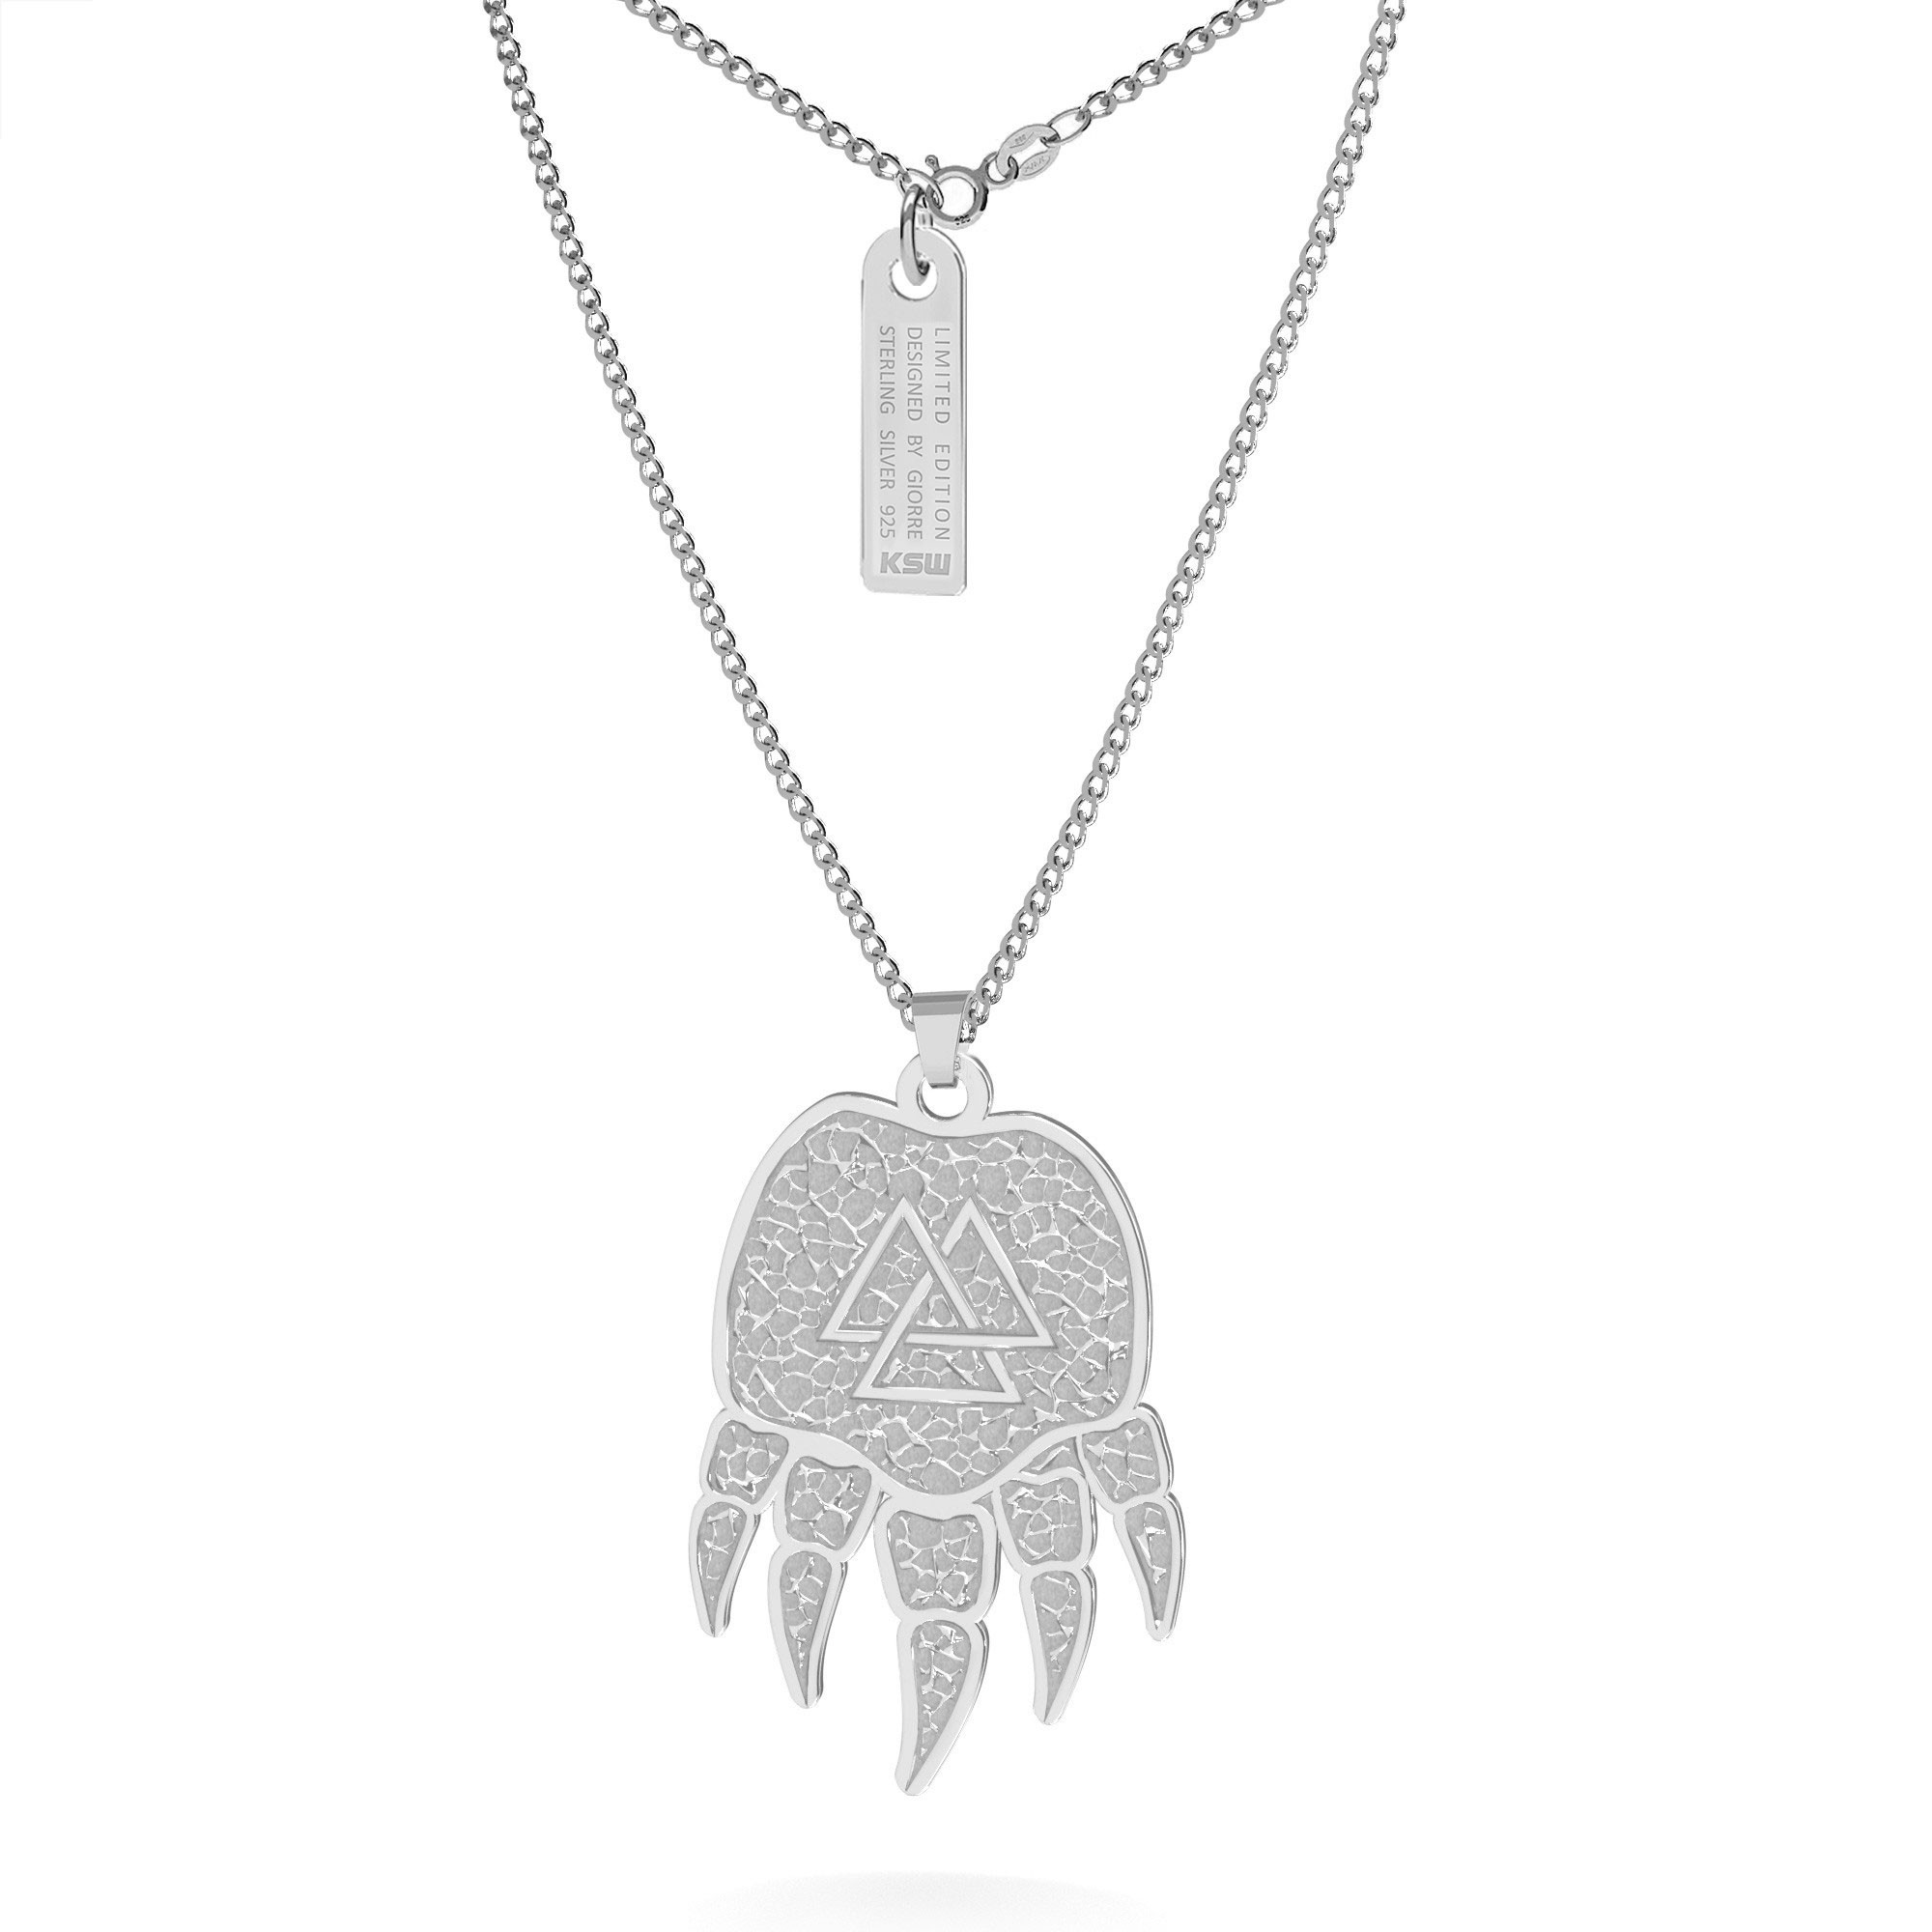 Silver paw necklace with celtic pattern, curb chain